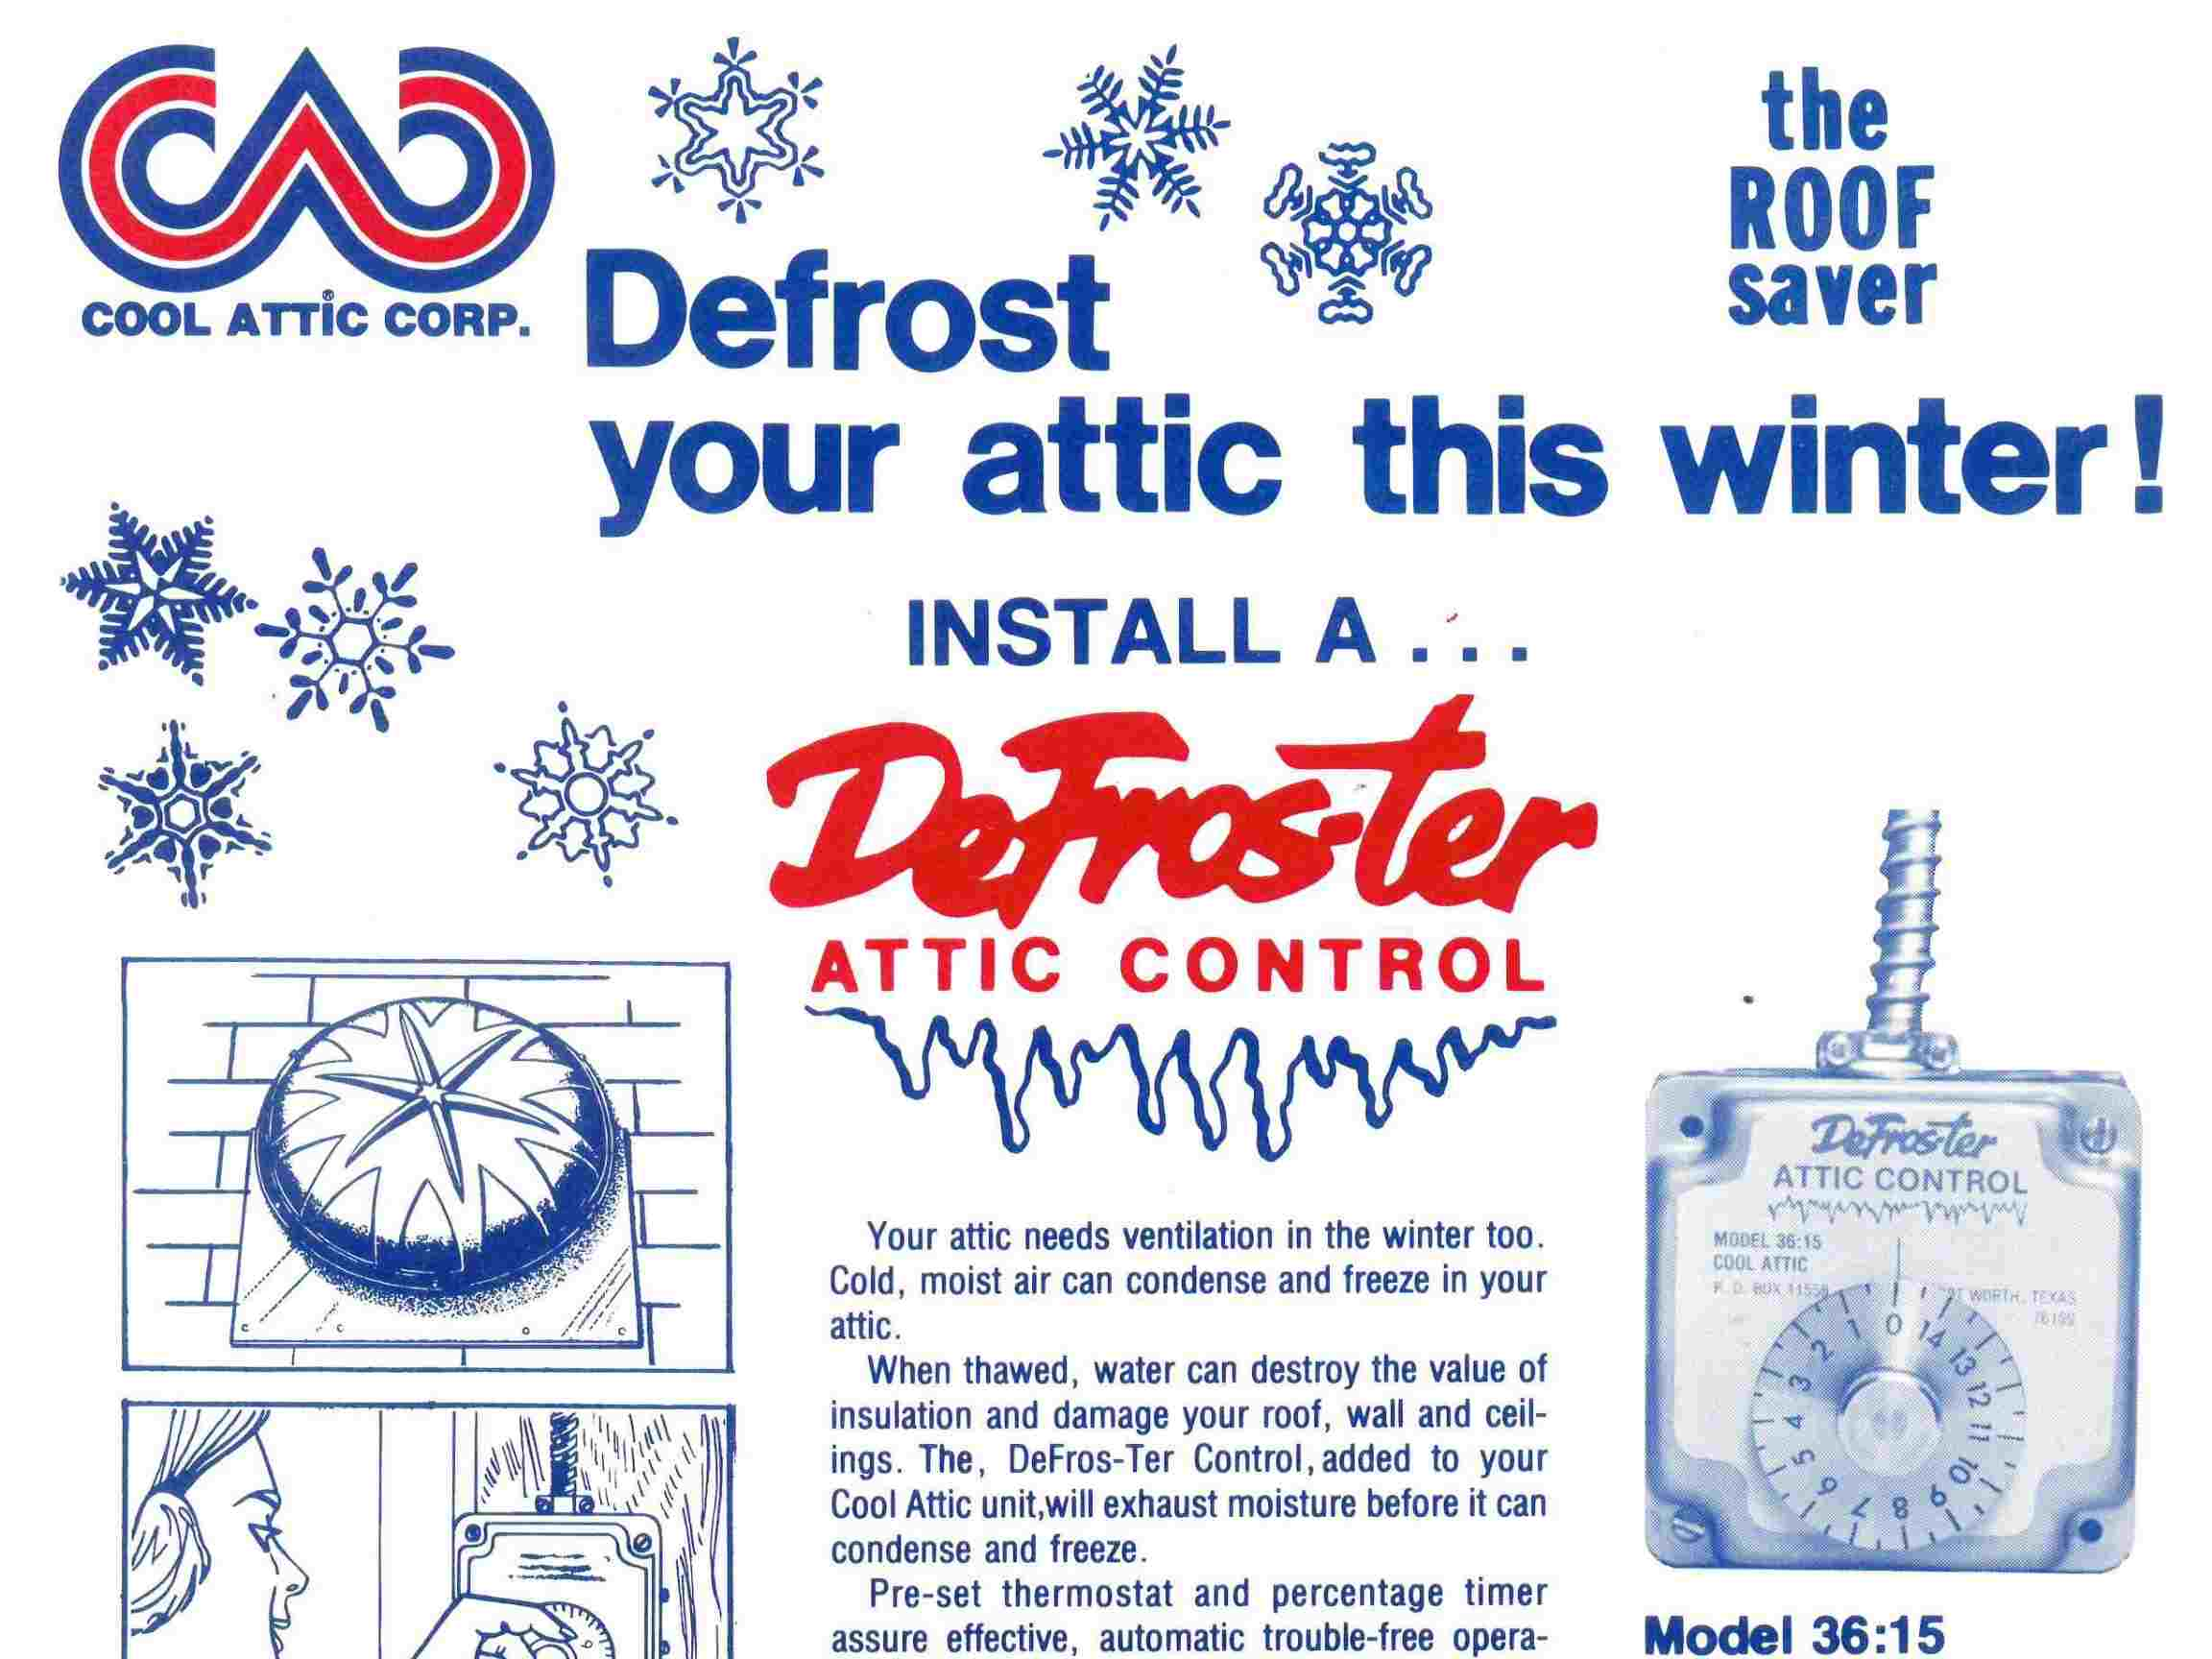 Old advertisement showing Ventamatic's former Attic DeFroster control under the Cool Attic brand name.